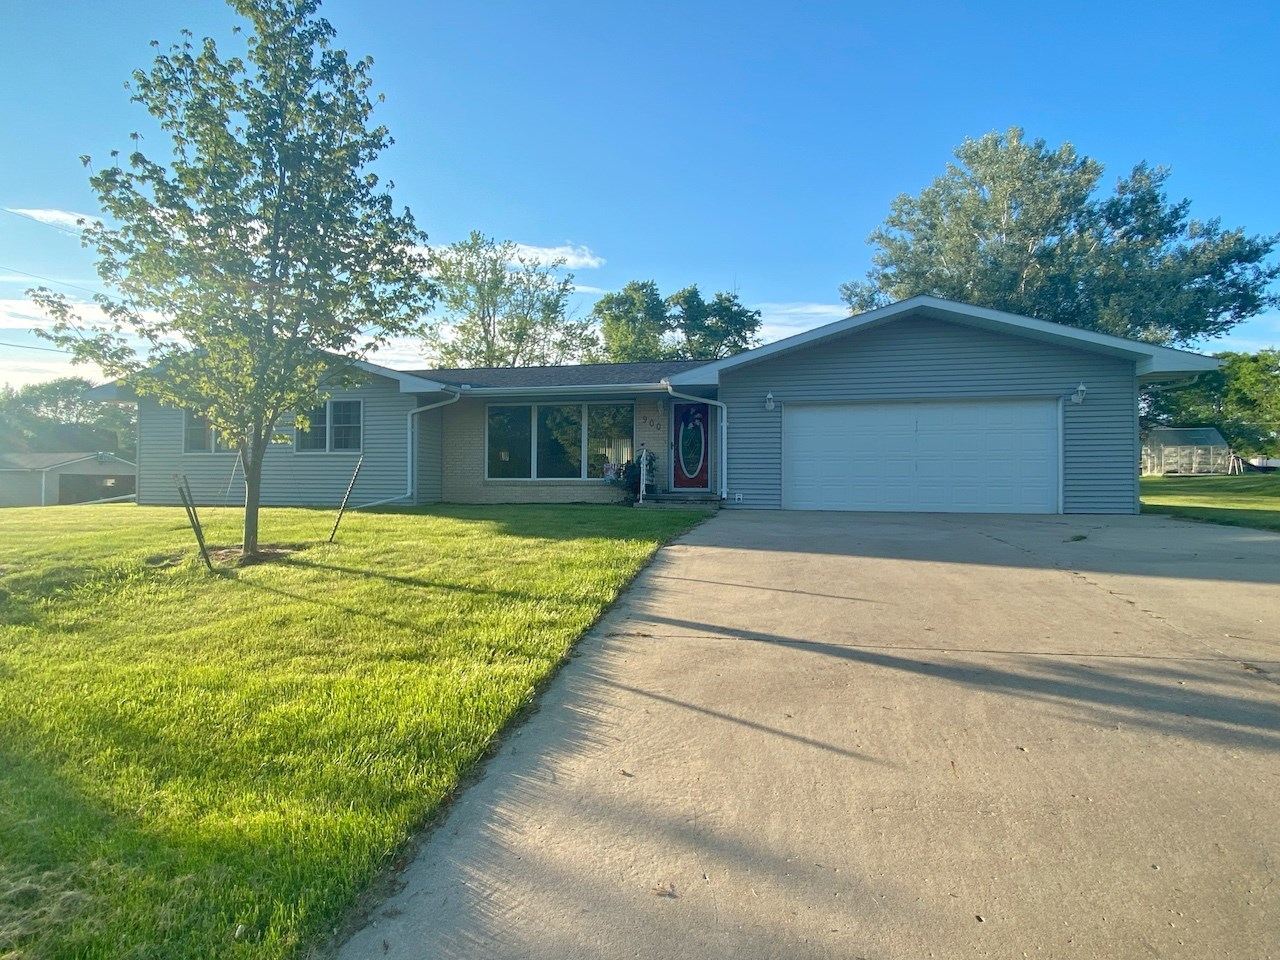 Ranch Home For Sale in Mount Ayr Iowa